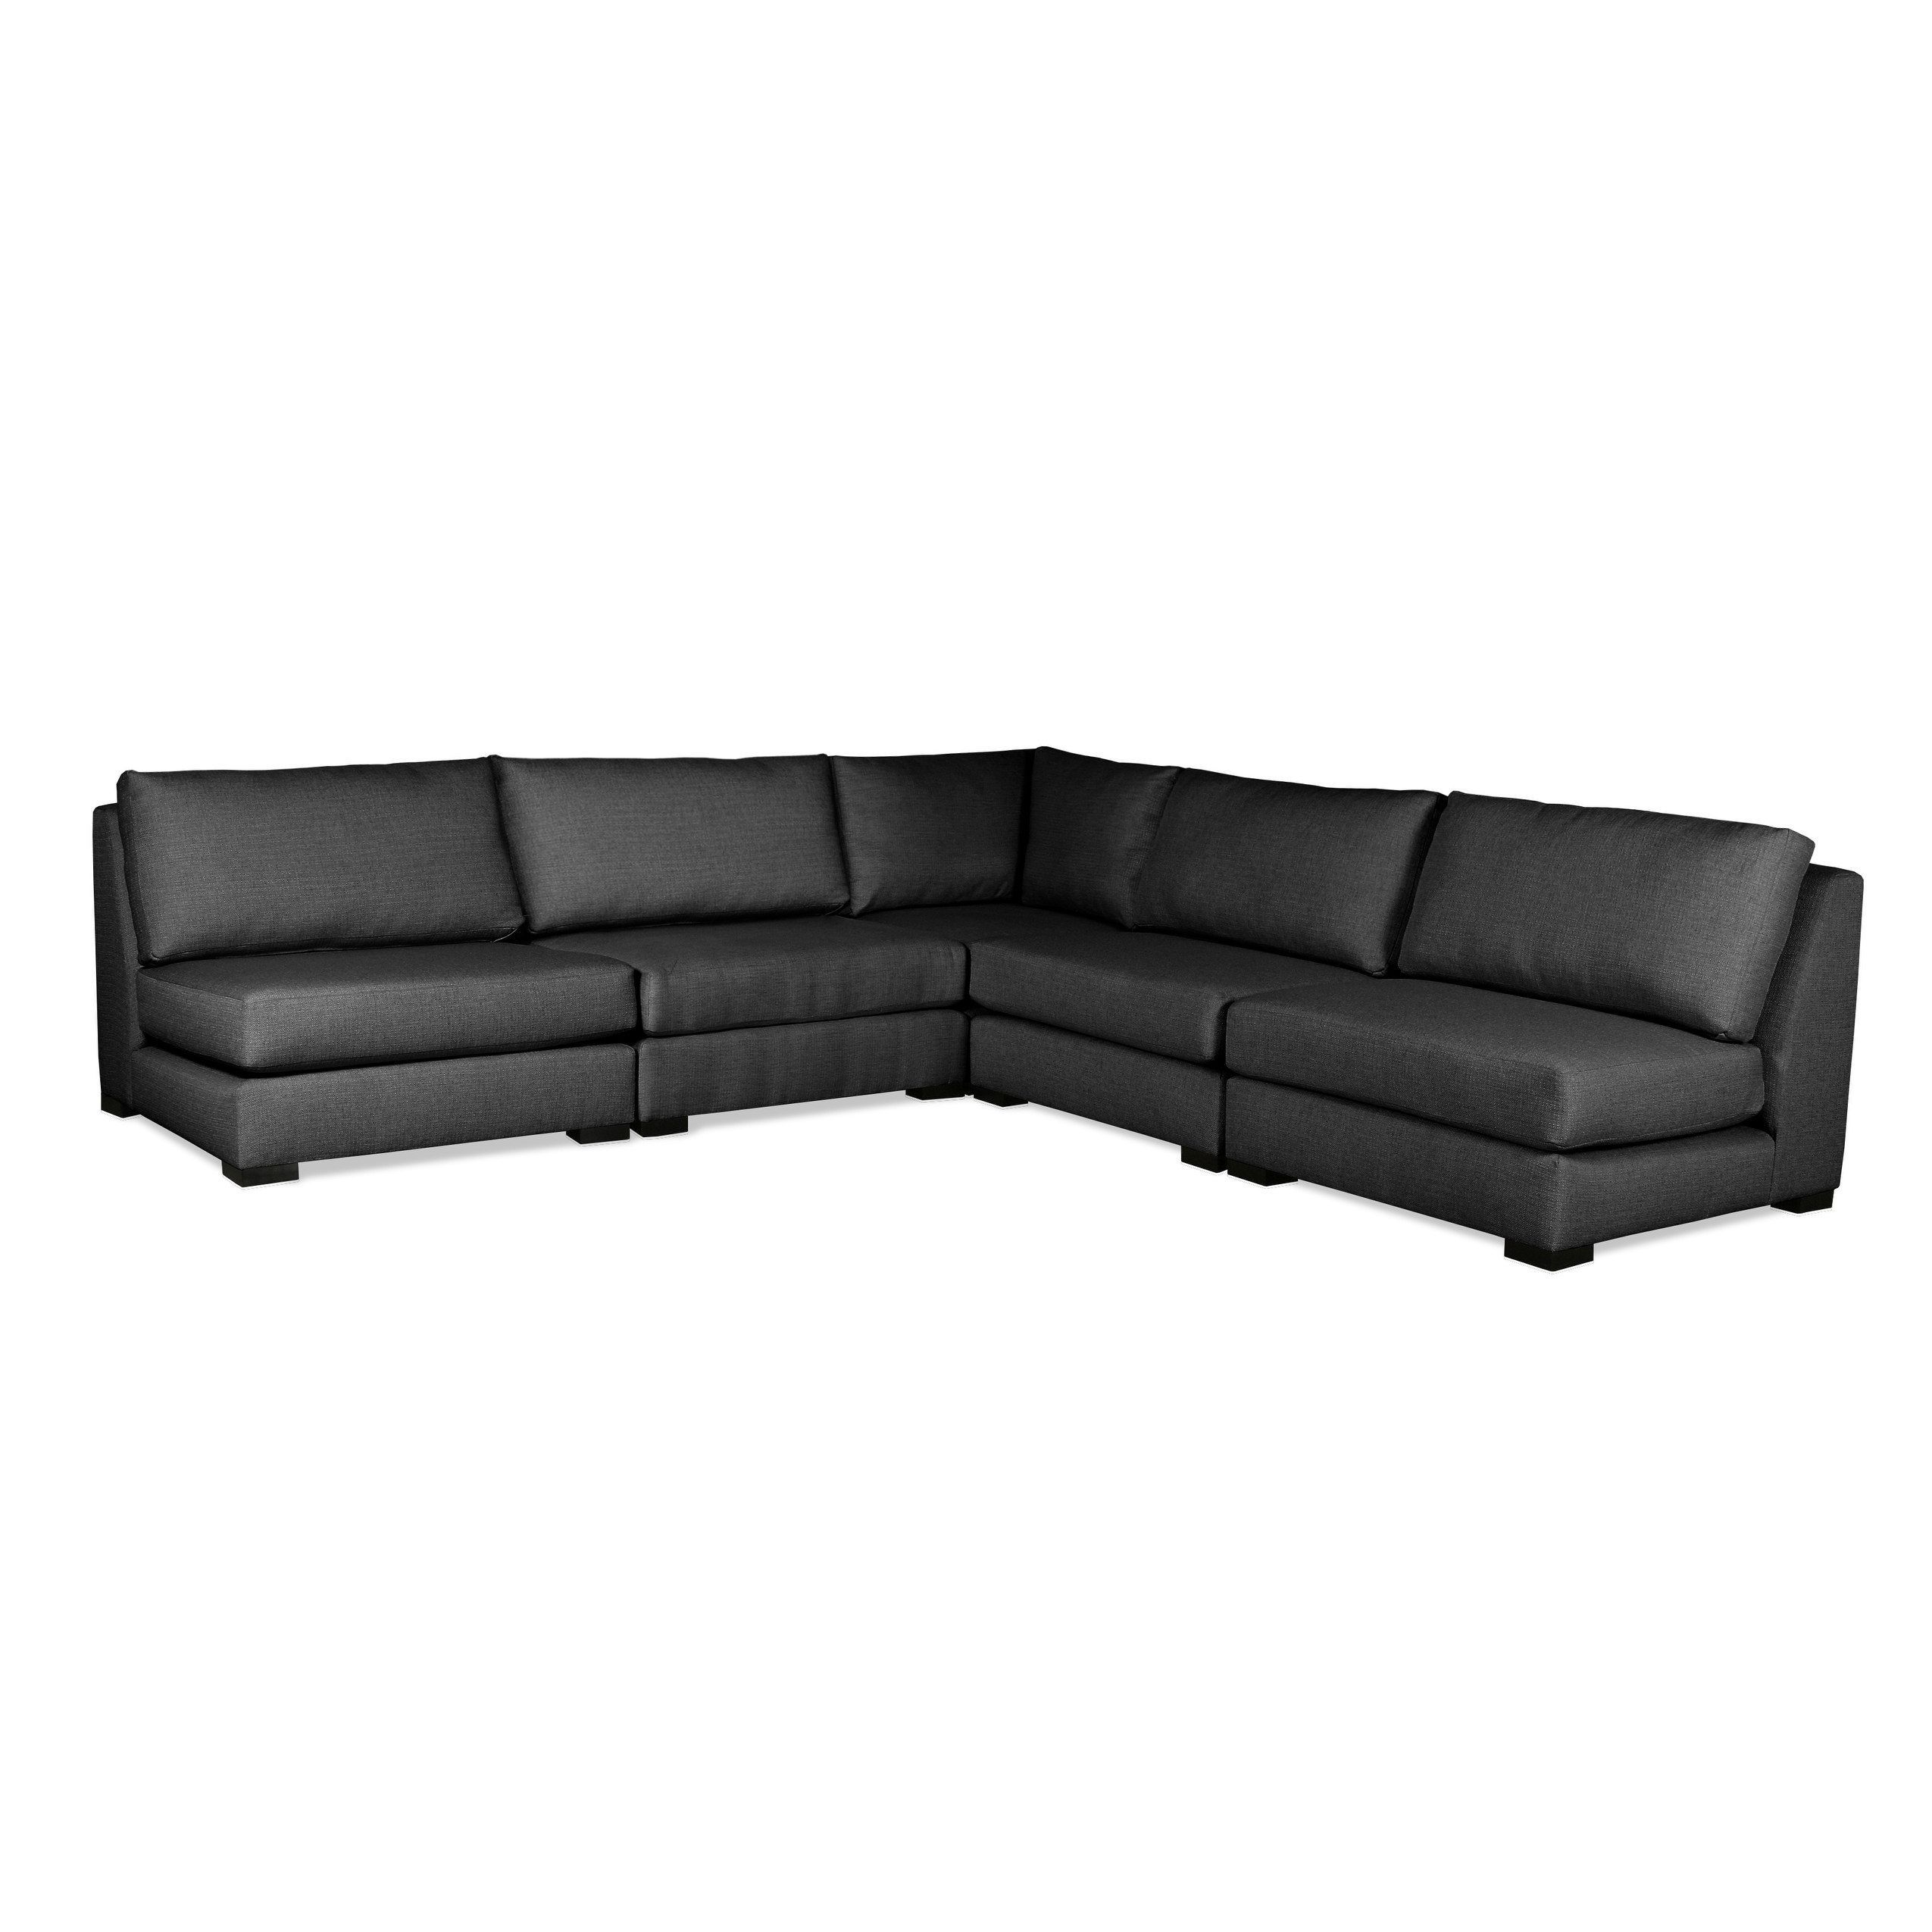 South Cone Home Yorkshire L-Shape Sectional (Charcoal), Black (Wood ...